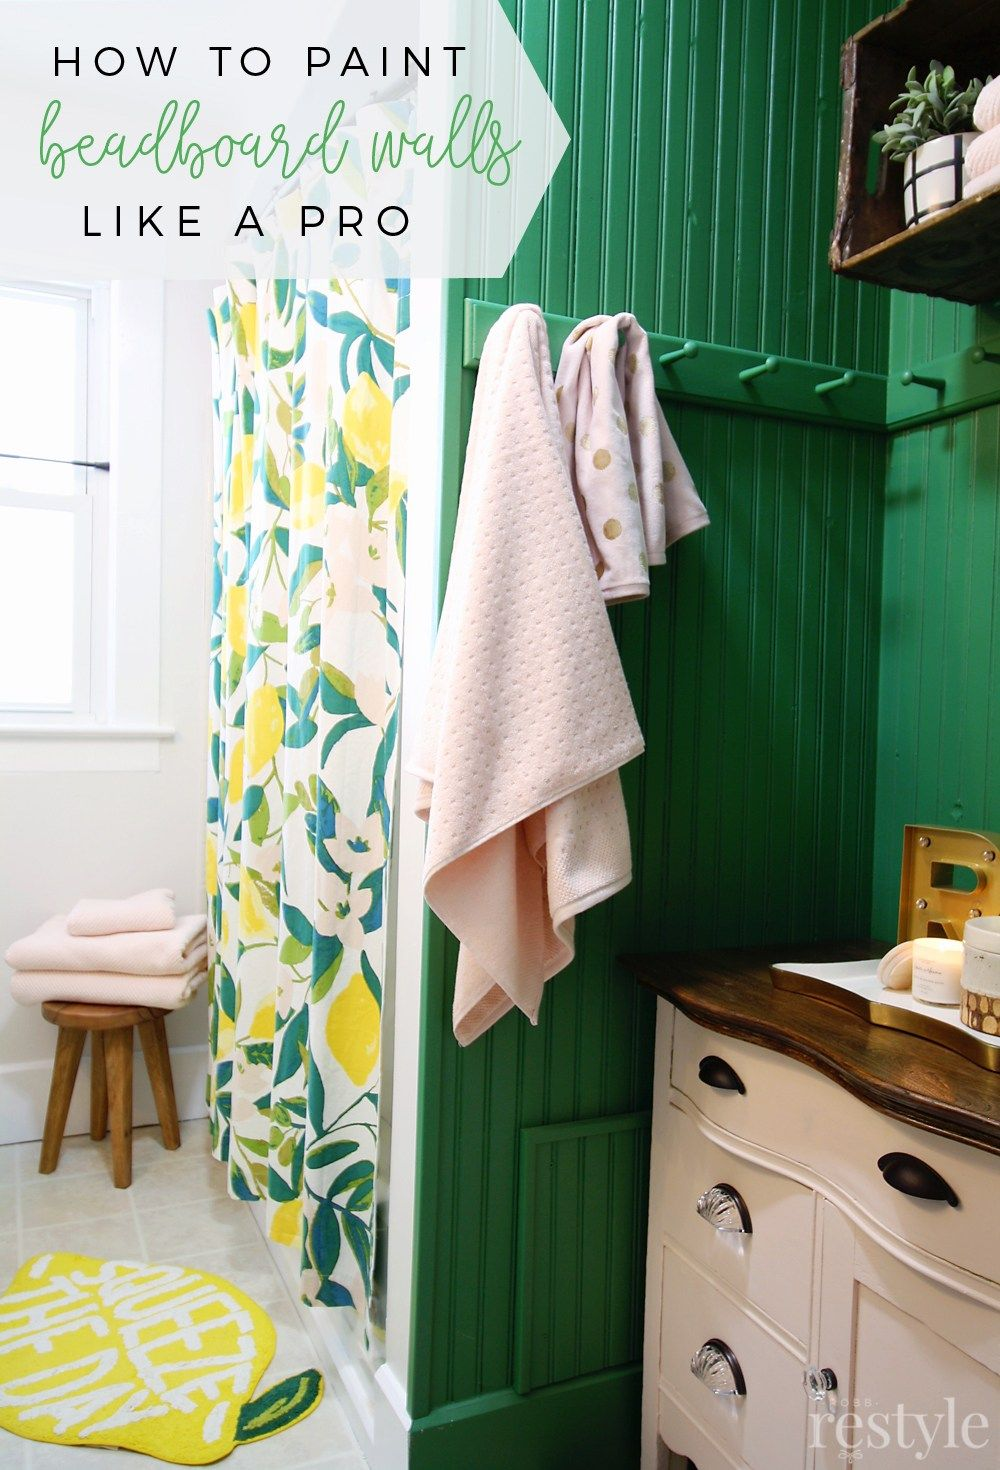 How To Paint Beadboard Wall Paneling Like A Pro